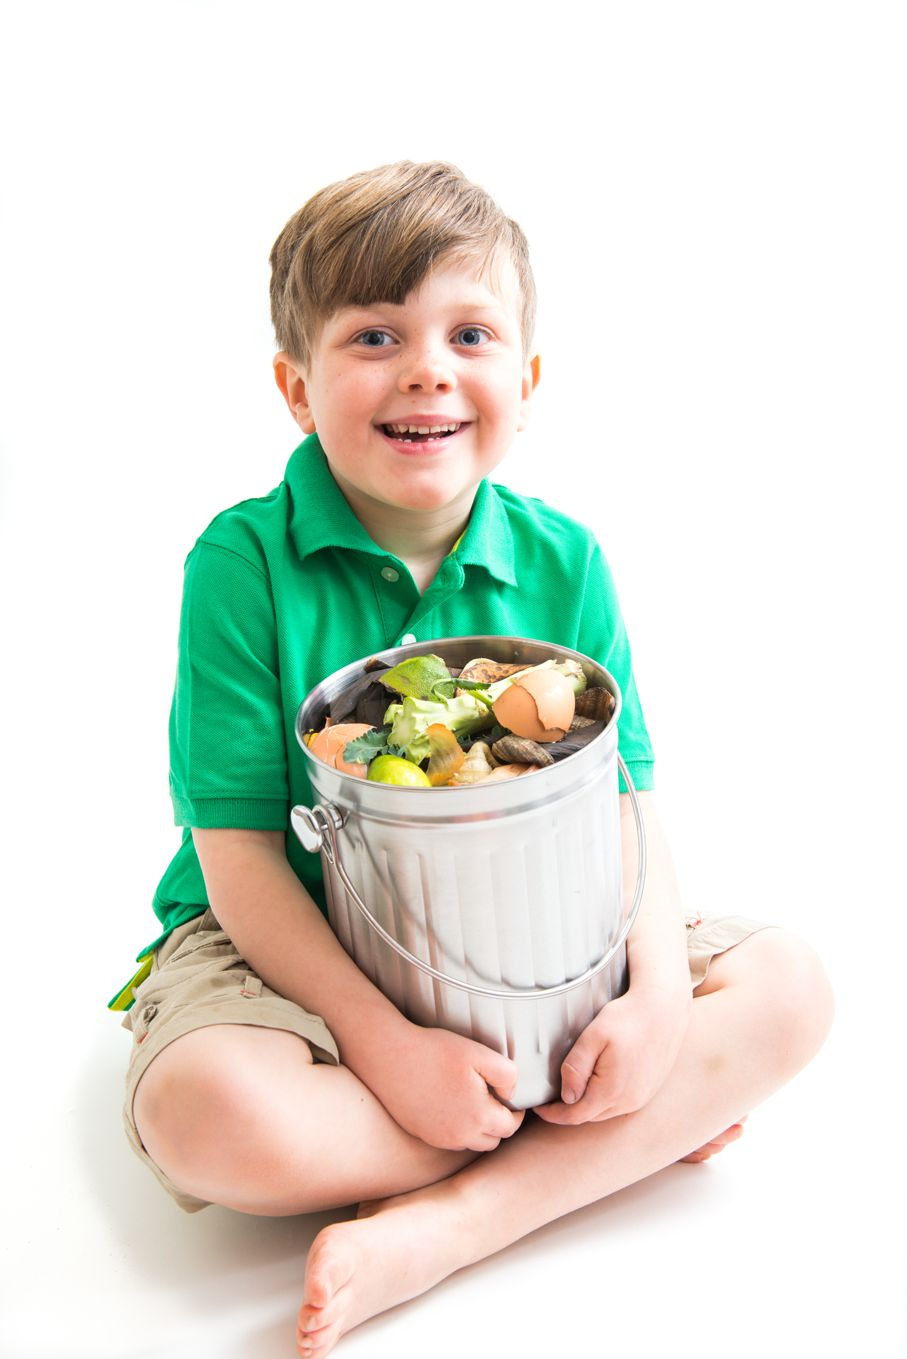 Cute young boy holding compost container show environmental responsibility